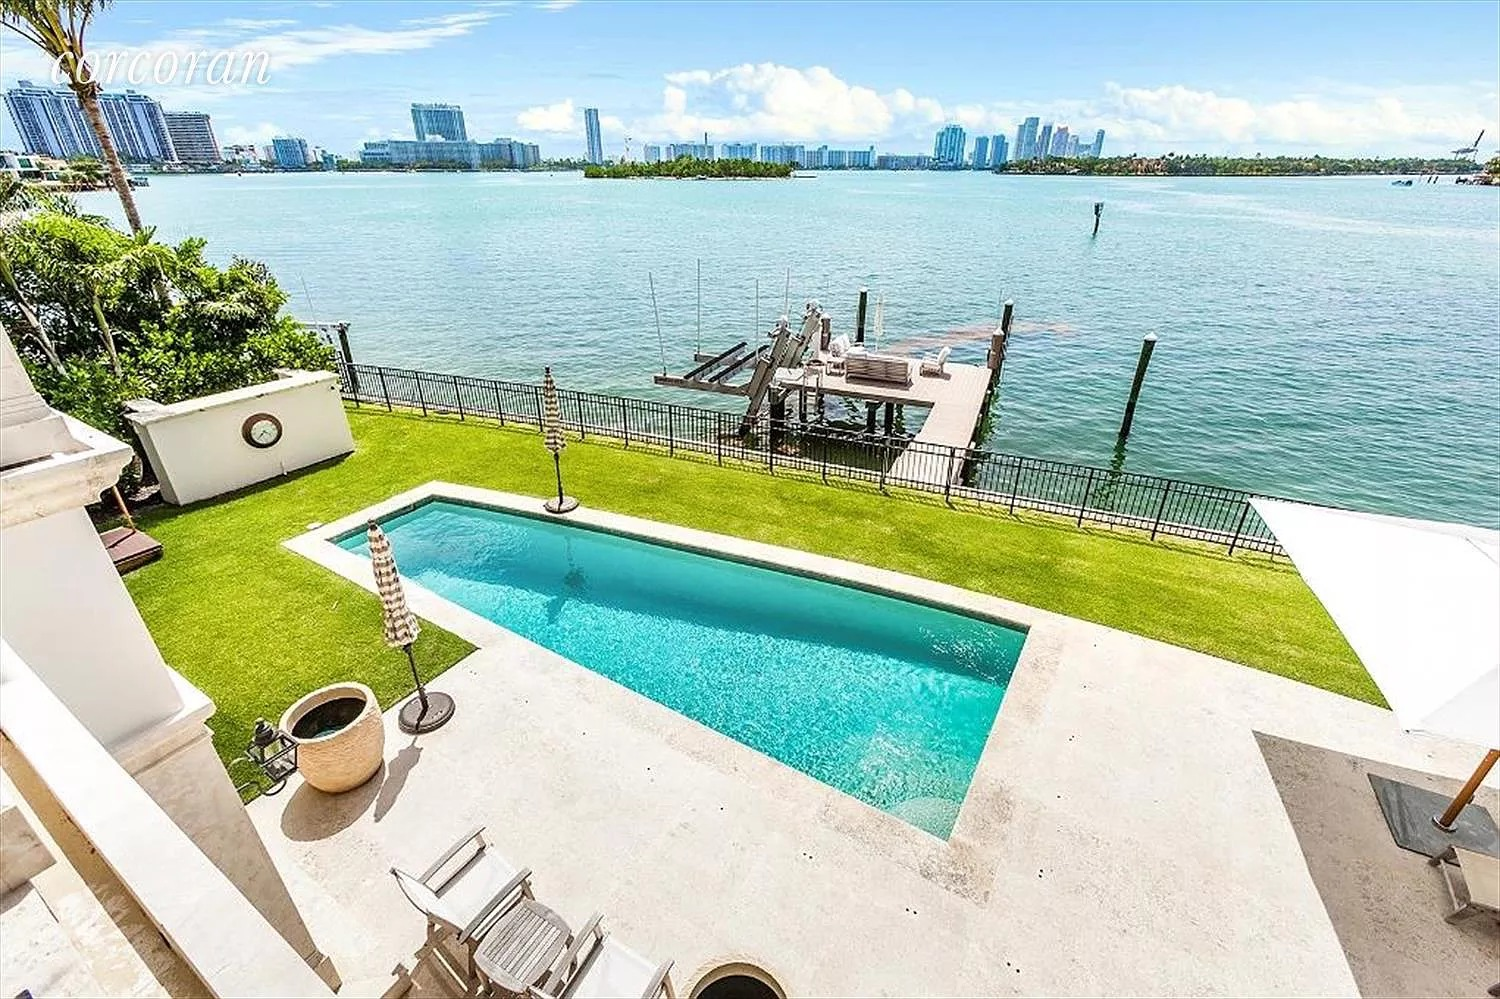 27 E Dilido Dr, Miami Beach, FL 33139 - $15,000,000 home for sale, house images, photos and pics gallery